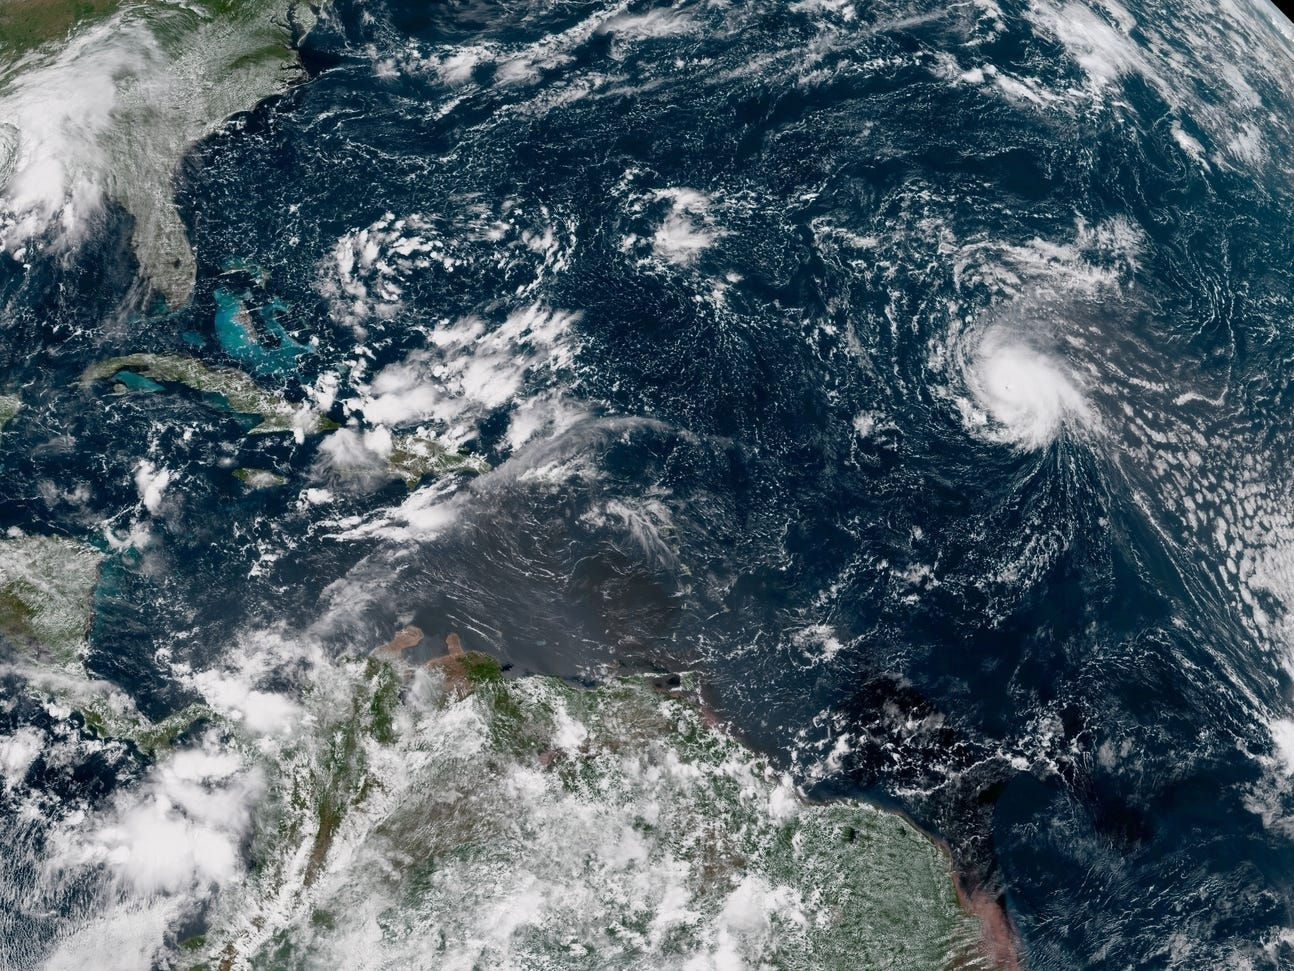 A satellite image shows Hurricane Florence (right) spinning in the central Atlantic Ocean. The U.S. East Coast is in the upper left of the image.